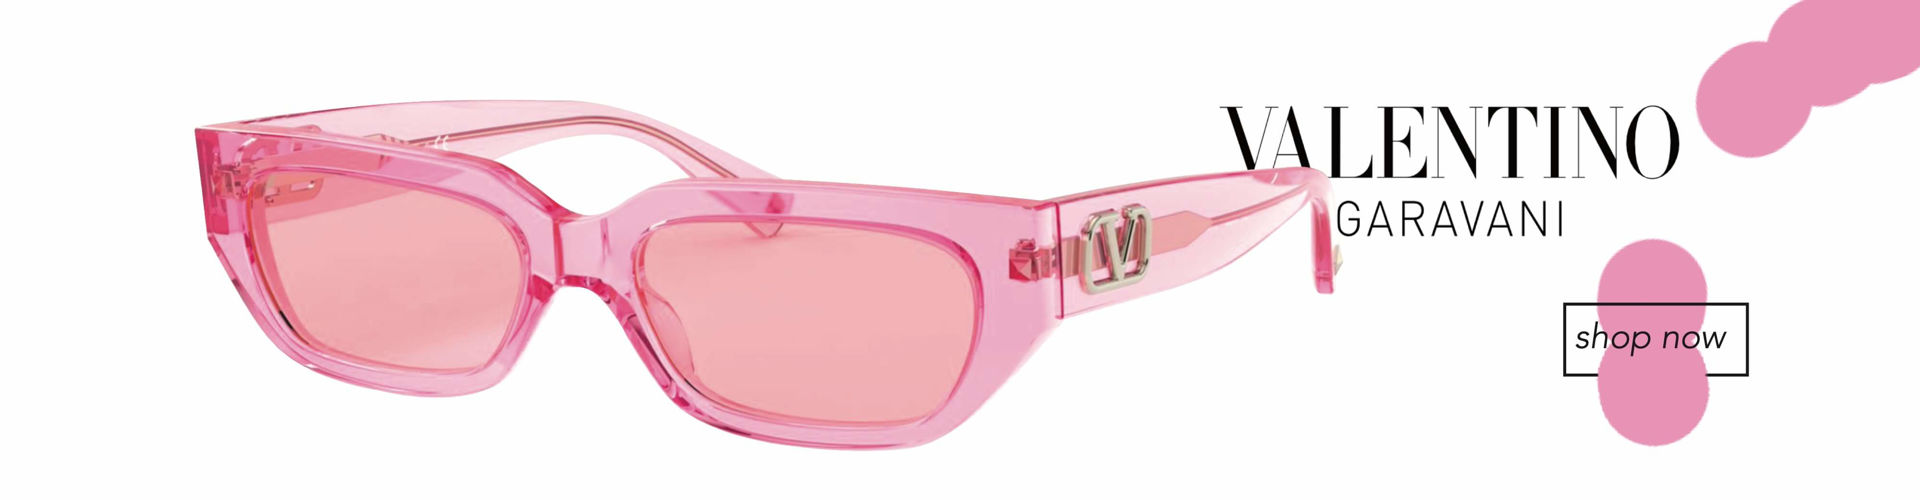 new collection Valentino sunglasses VA4080 pink